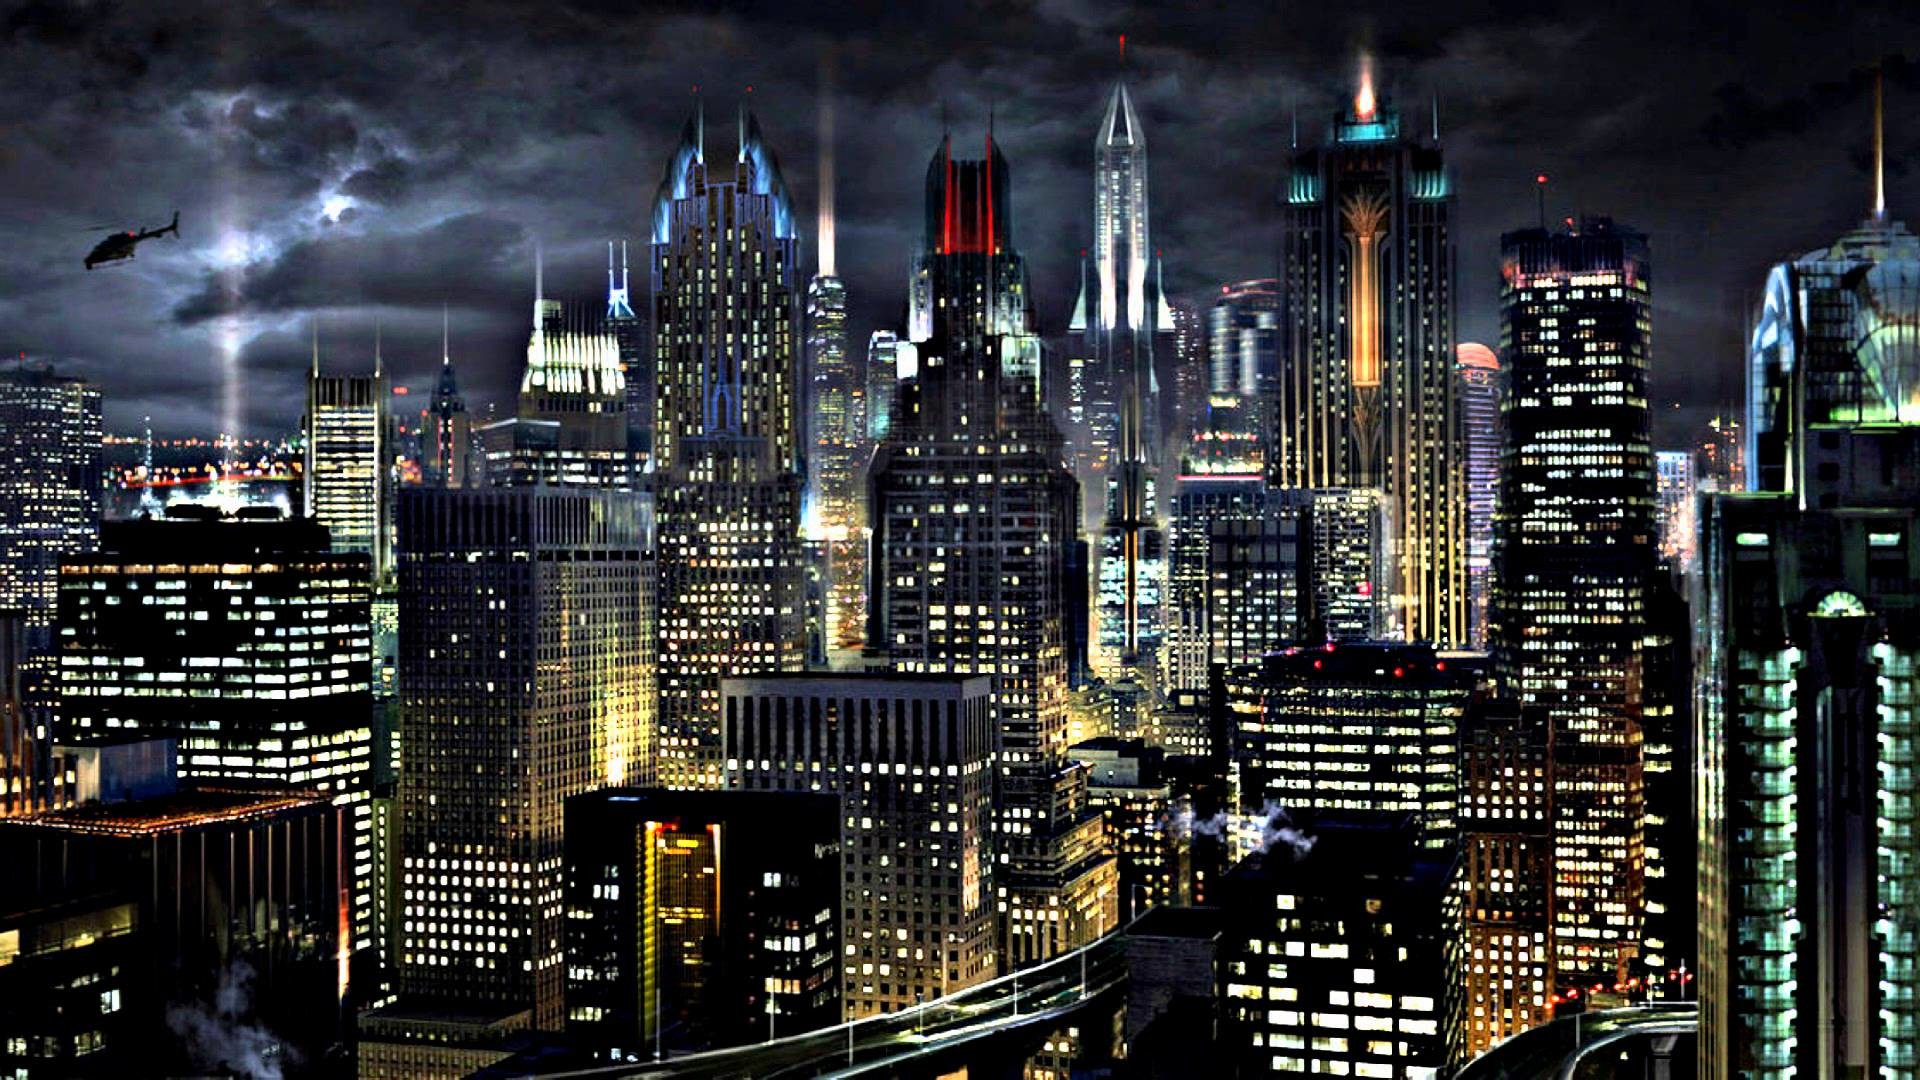 Gotham City Background 62 images 1920x1080